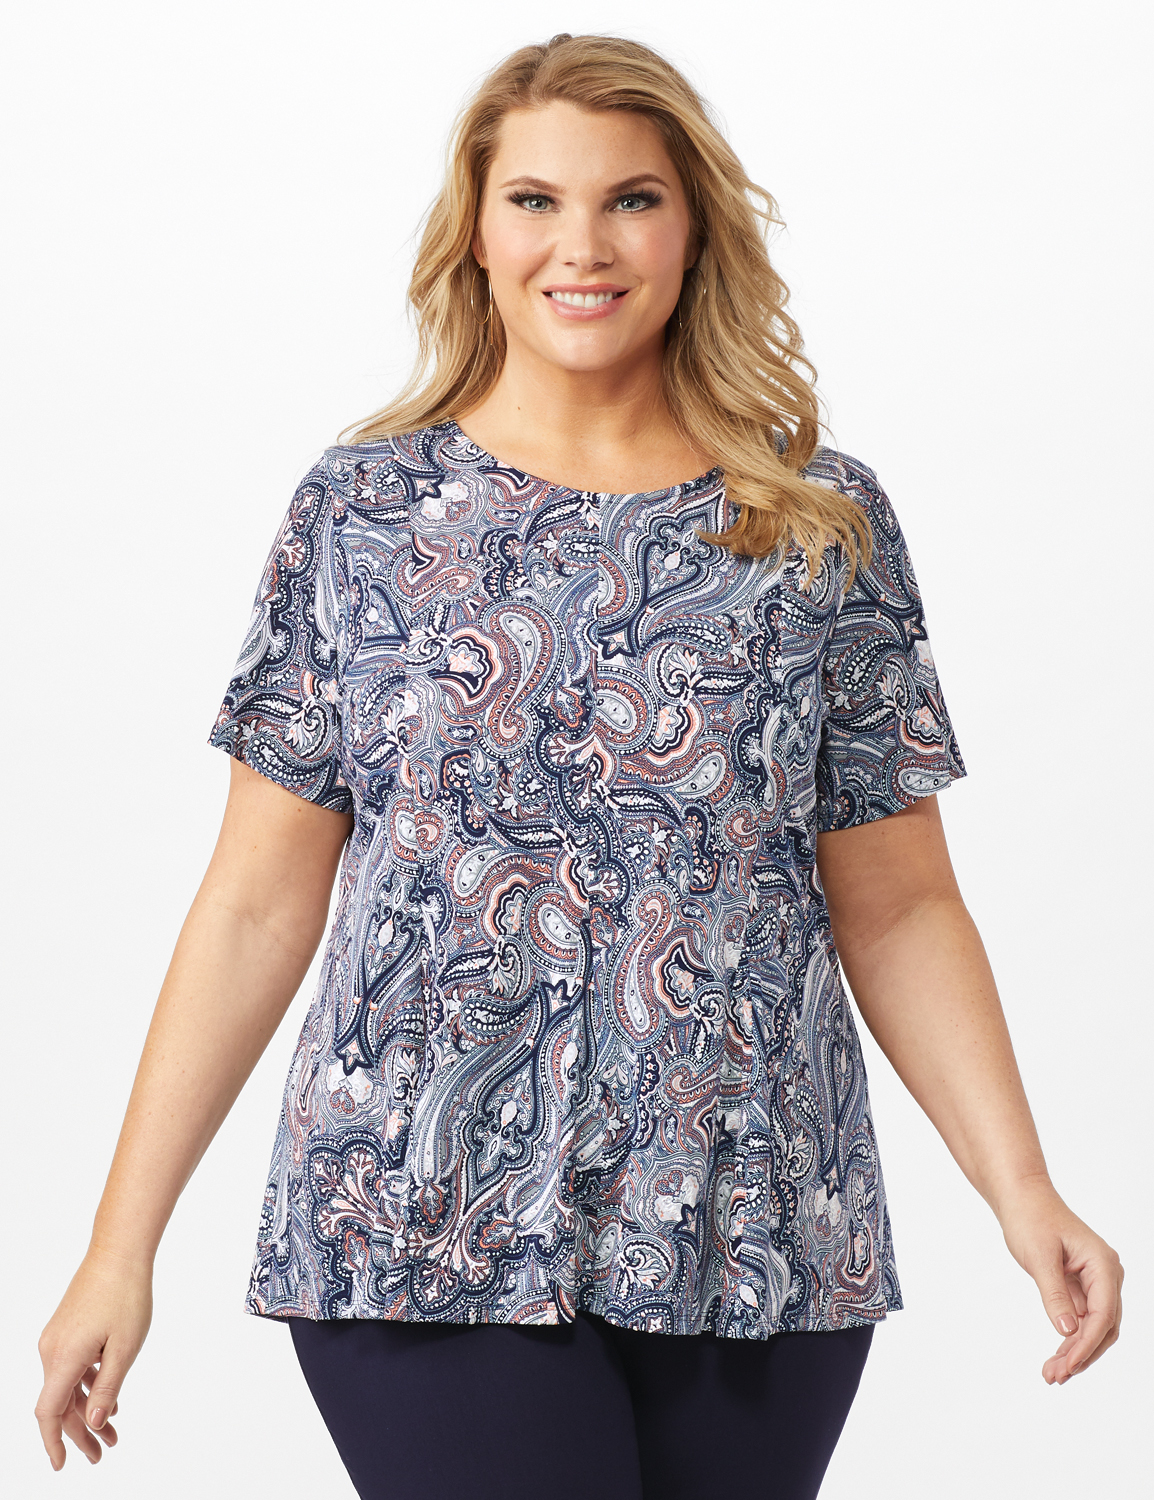 Puff Print Fit and Flare Knit Top - Plus -Navy - Front